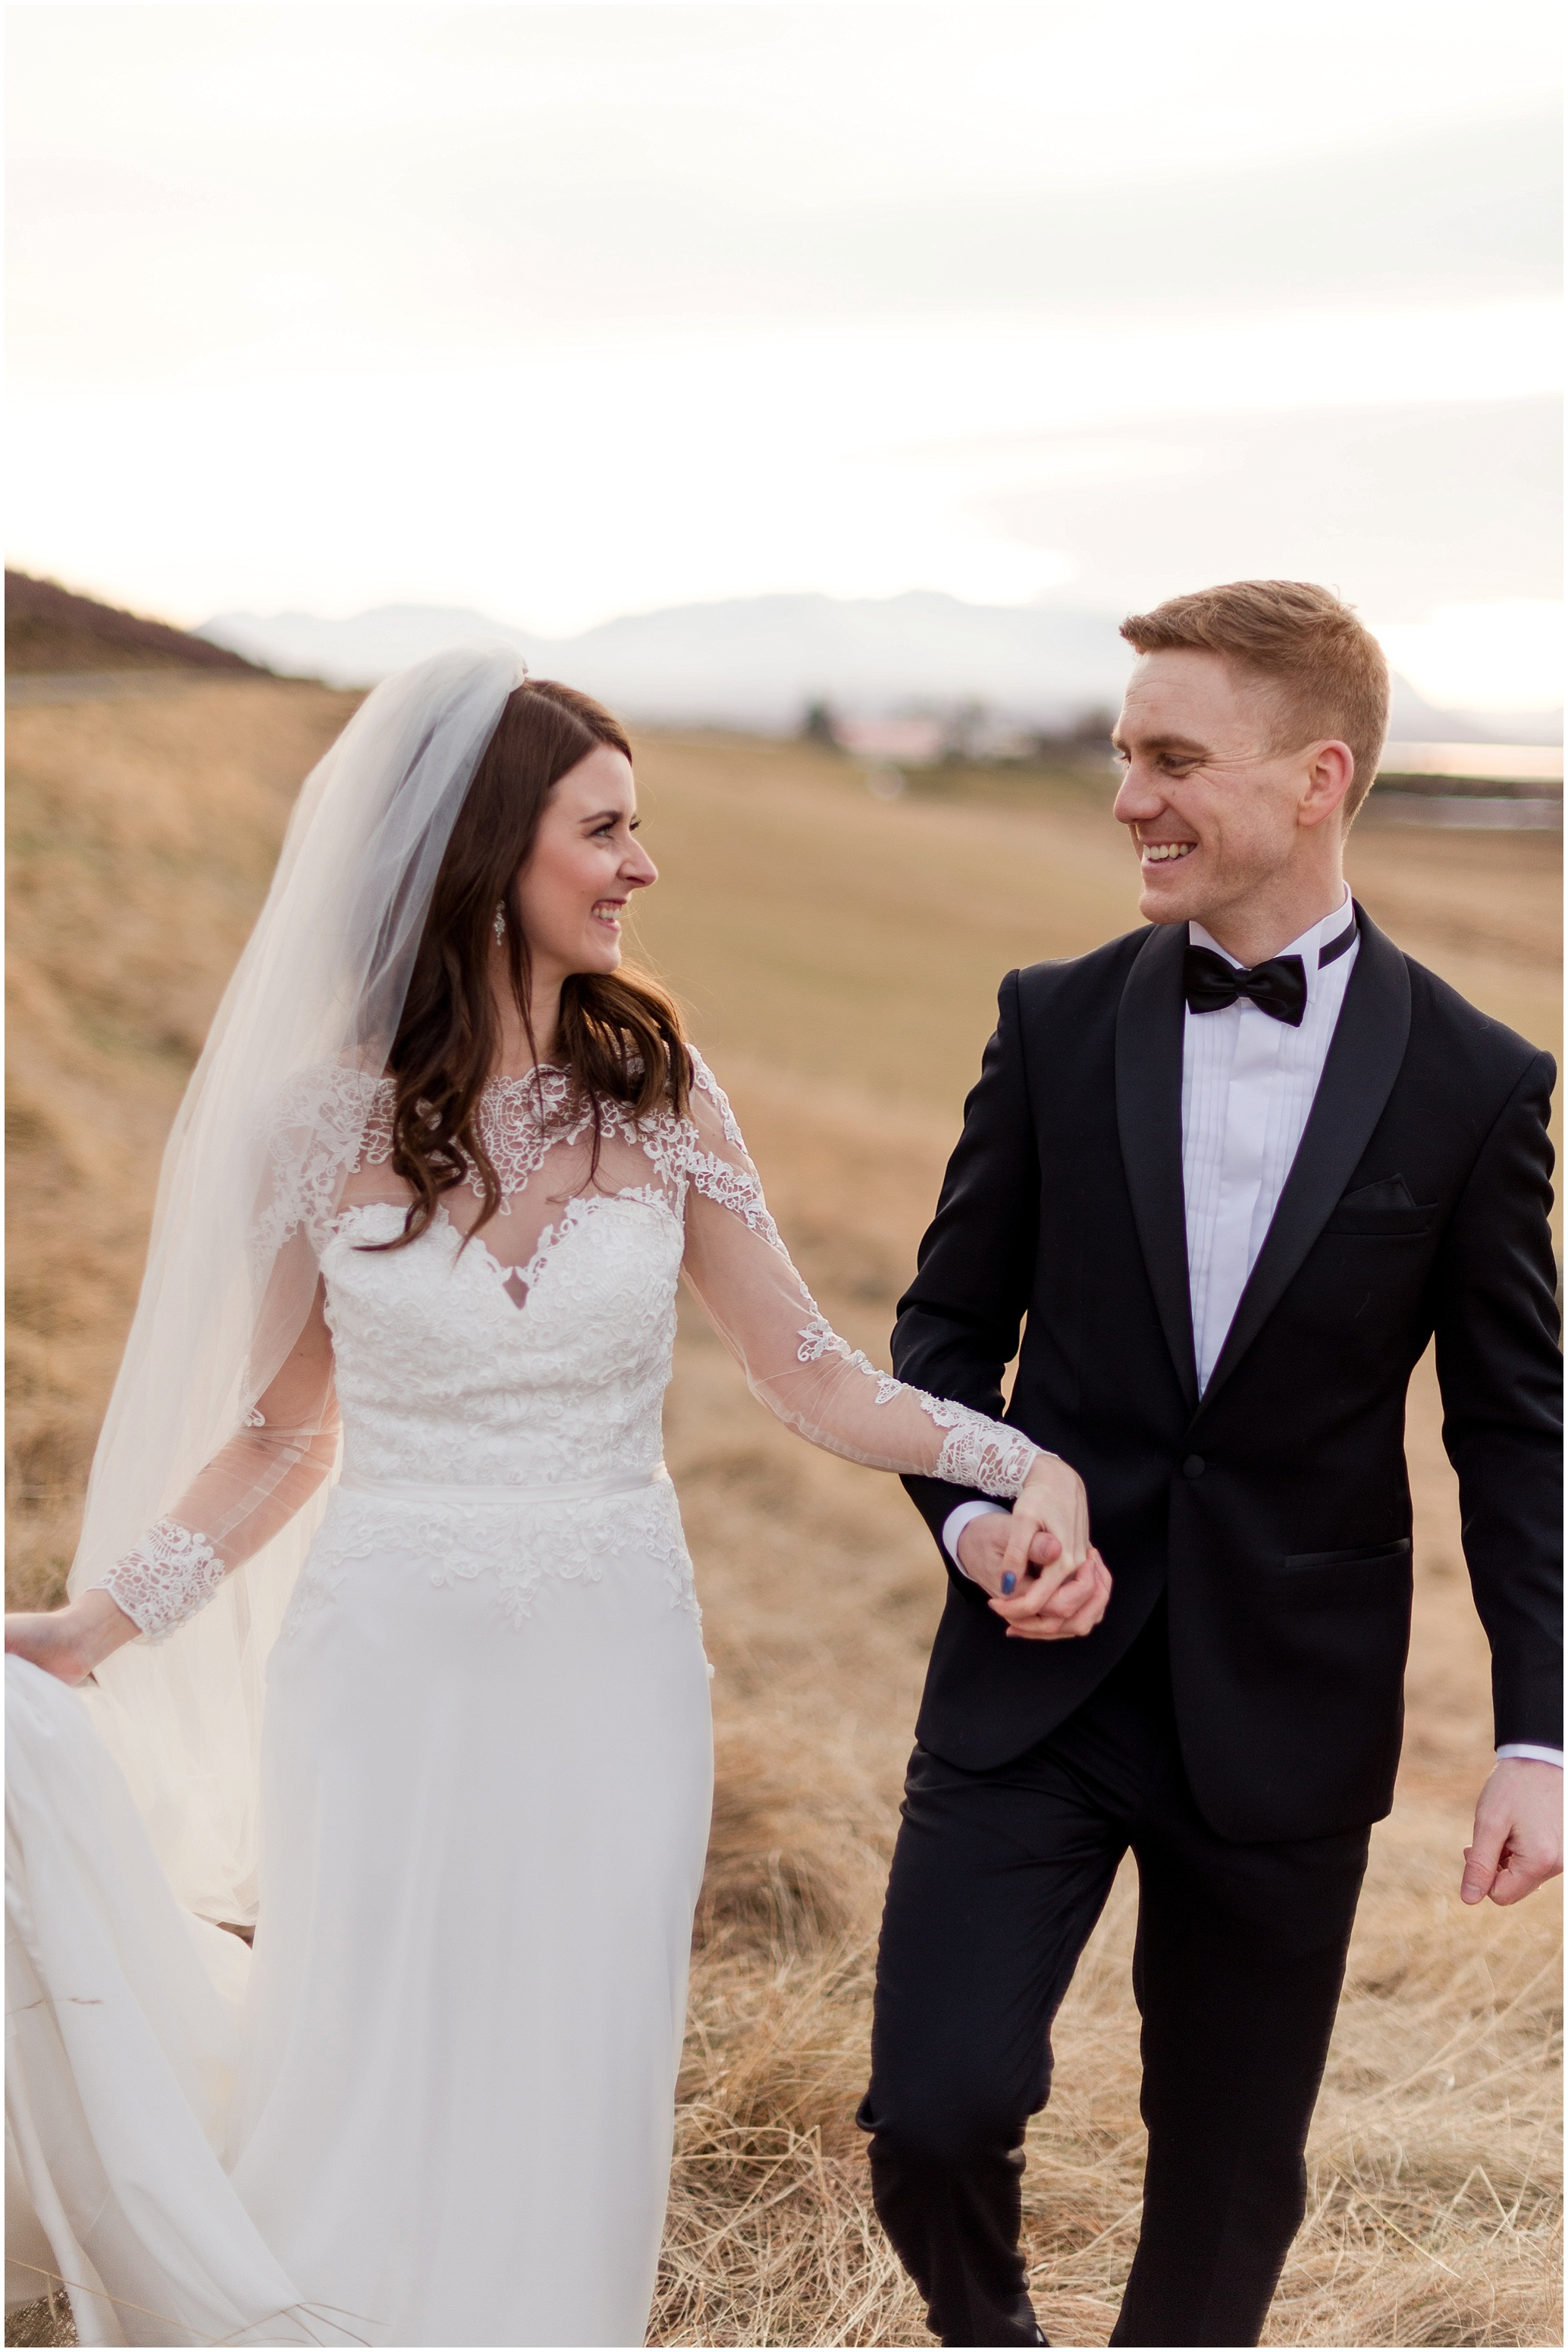 Hannah Leigh Photography Akureyri Iceland Wedding_3197.jpg